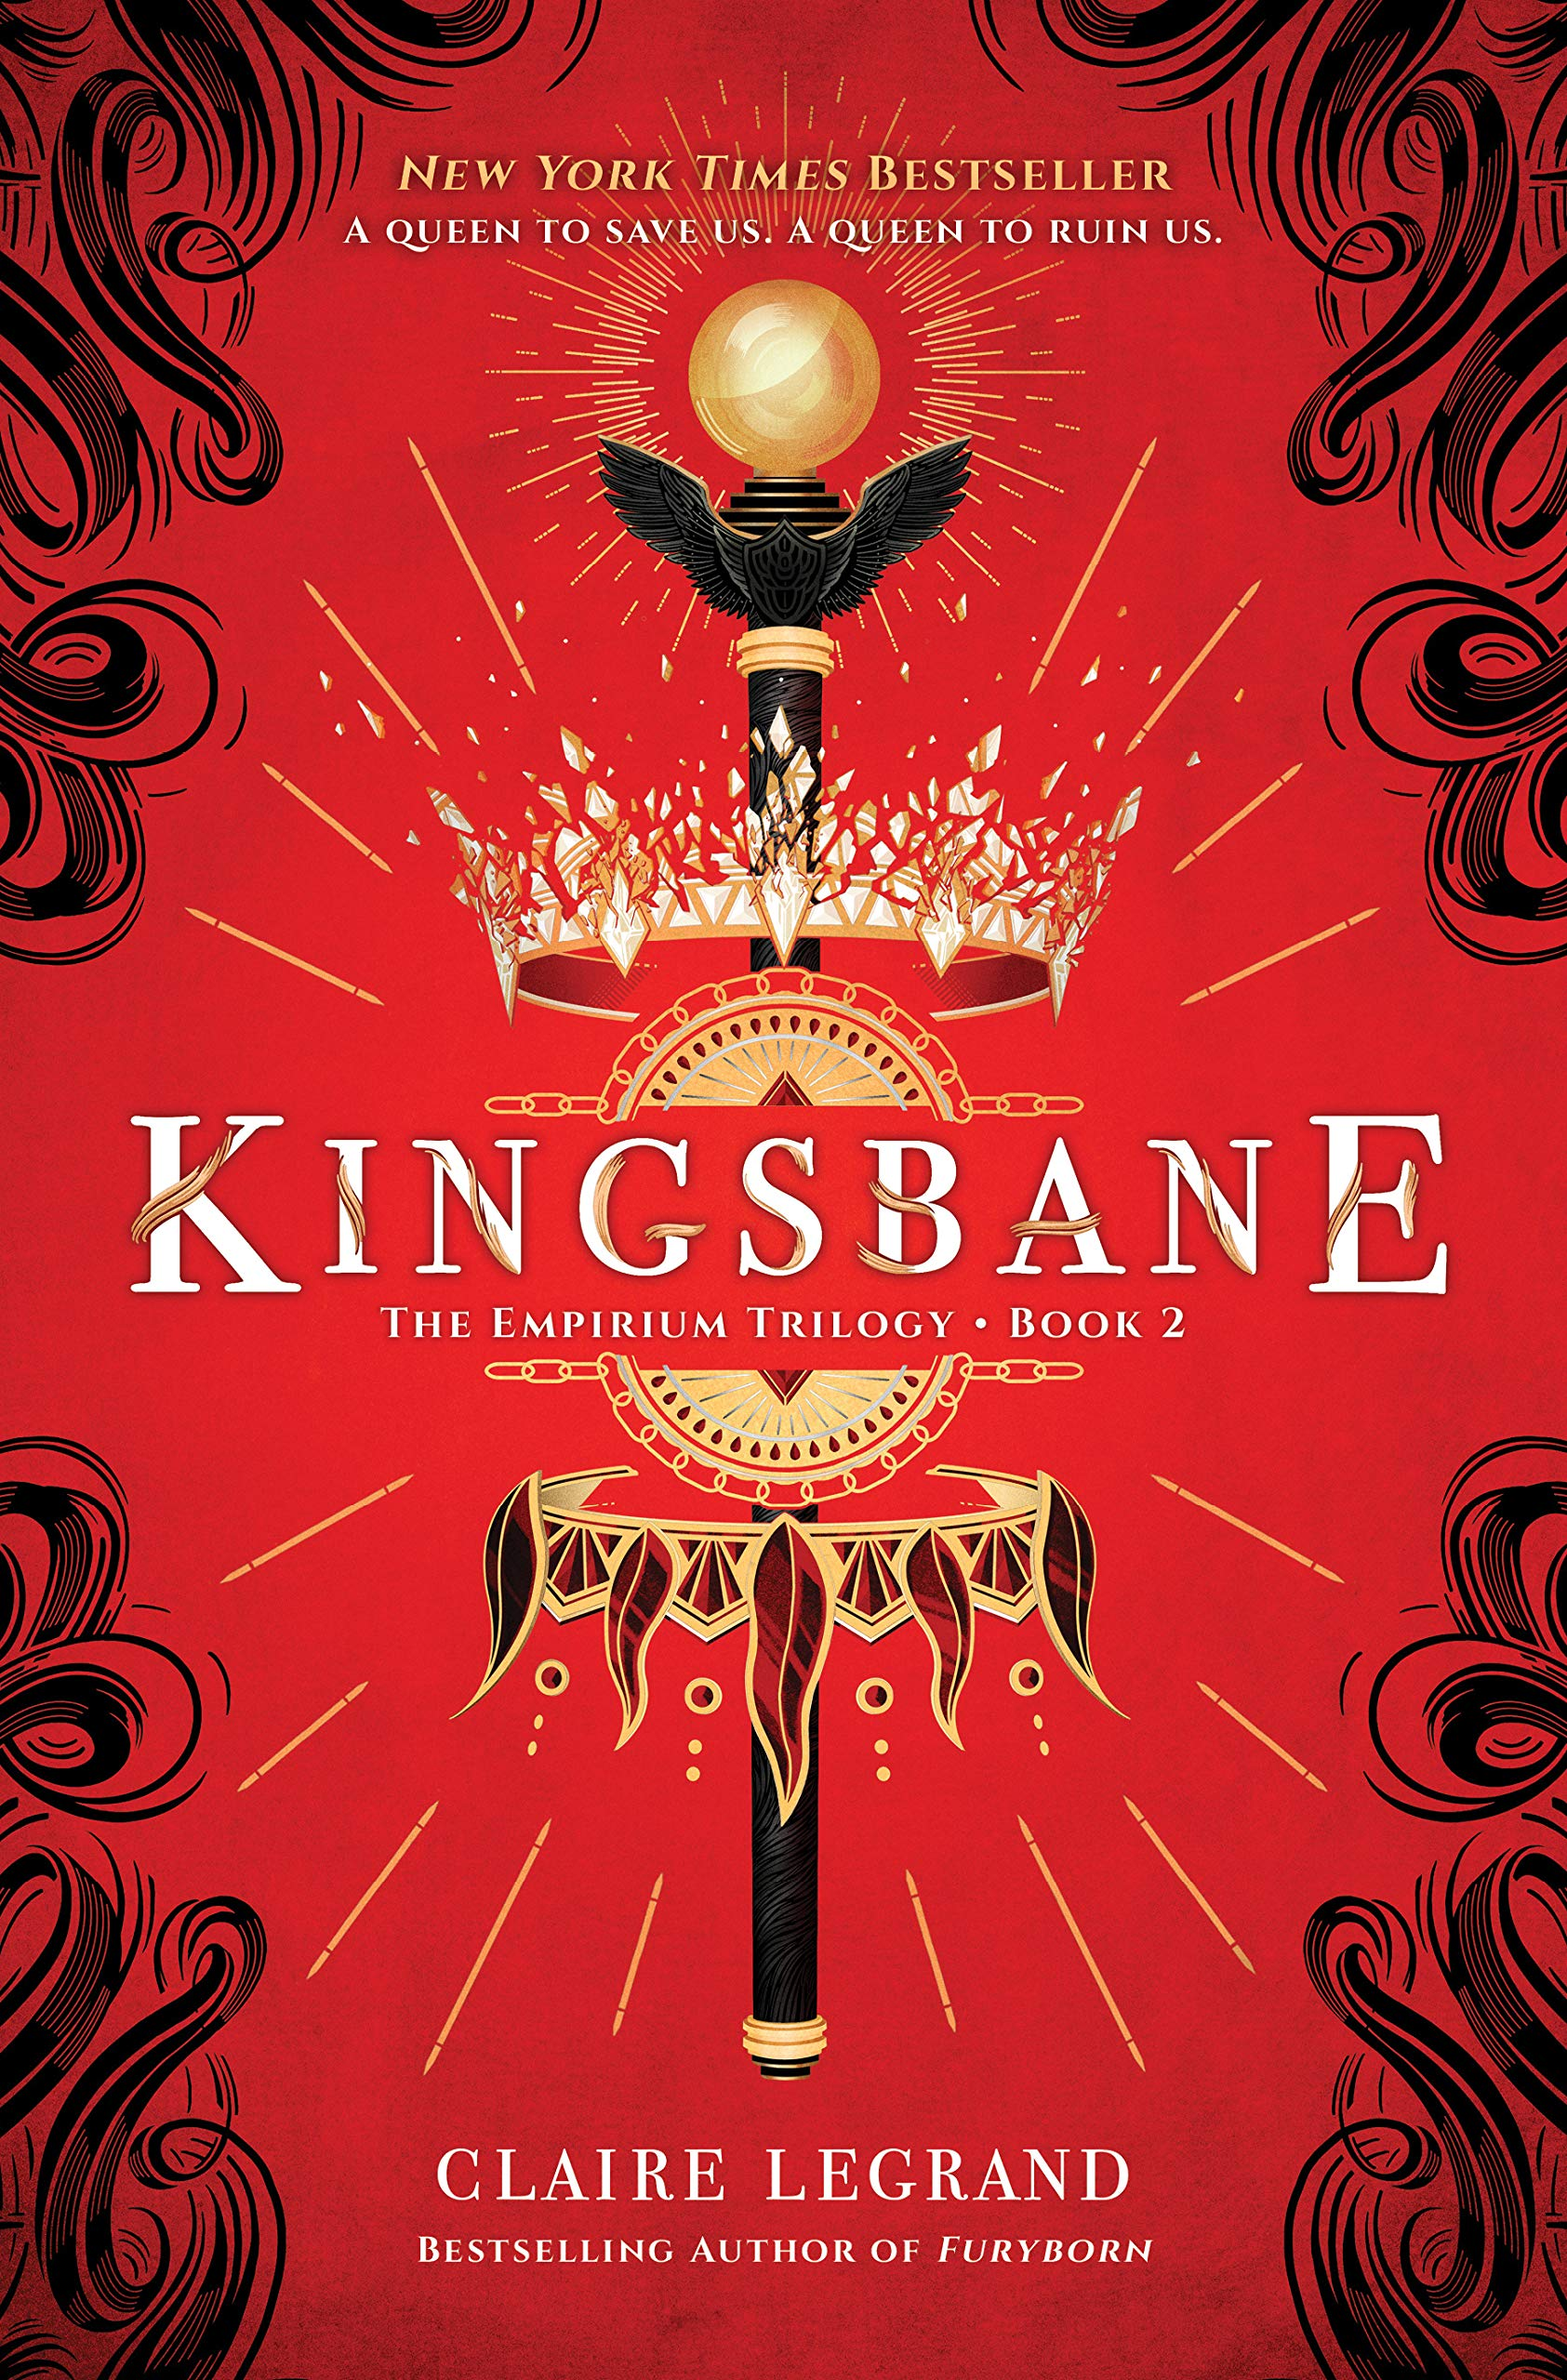 Amazon.com: Kingsbane (The Empirium Trilogy) (0760789267772 ...